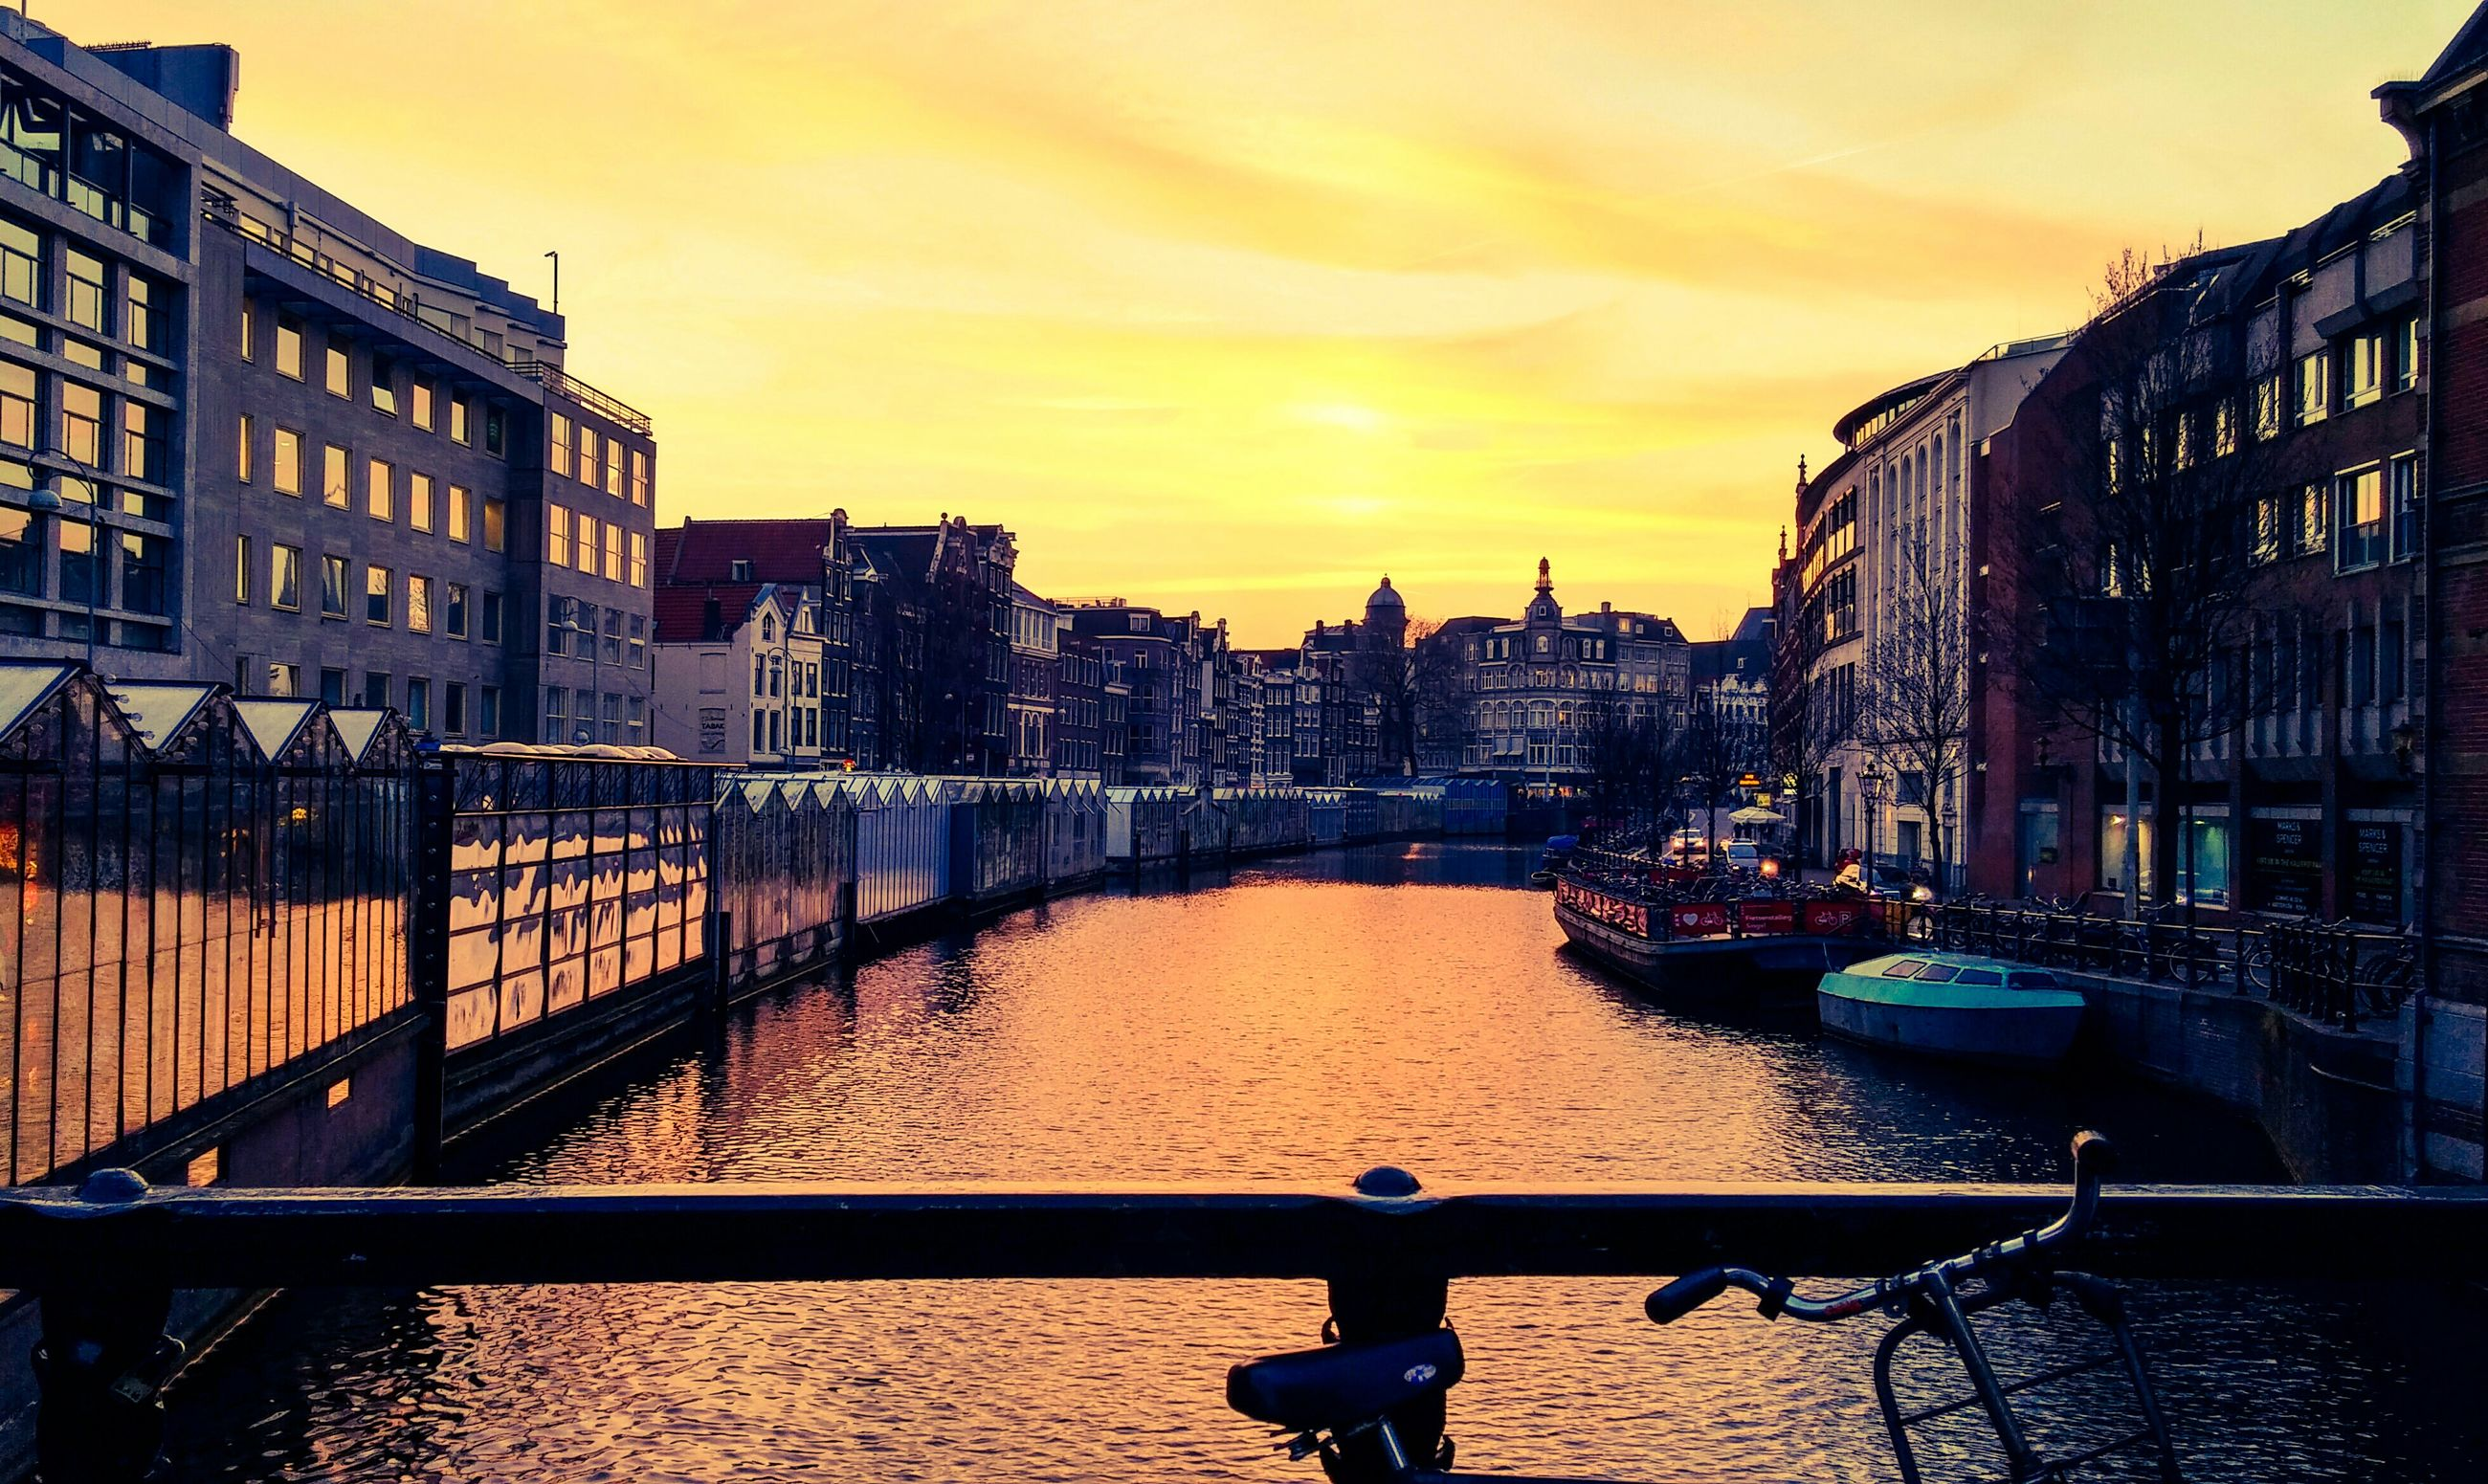 building exterior, architecture, built structure, water, sunset, city, canal, sky, railing, orange color, river, residential structure, building, transportation, bridge - man made structure, residential building, cloud - sky, outdoors, mode of transport, cityscape